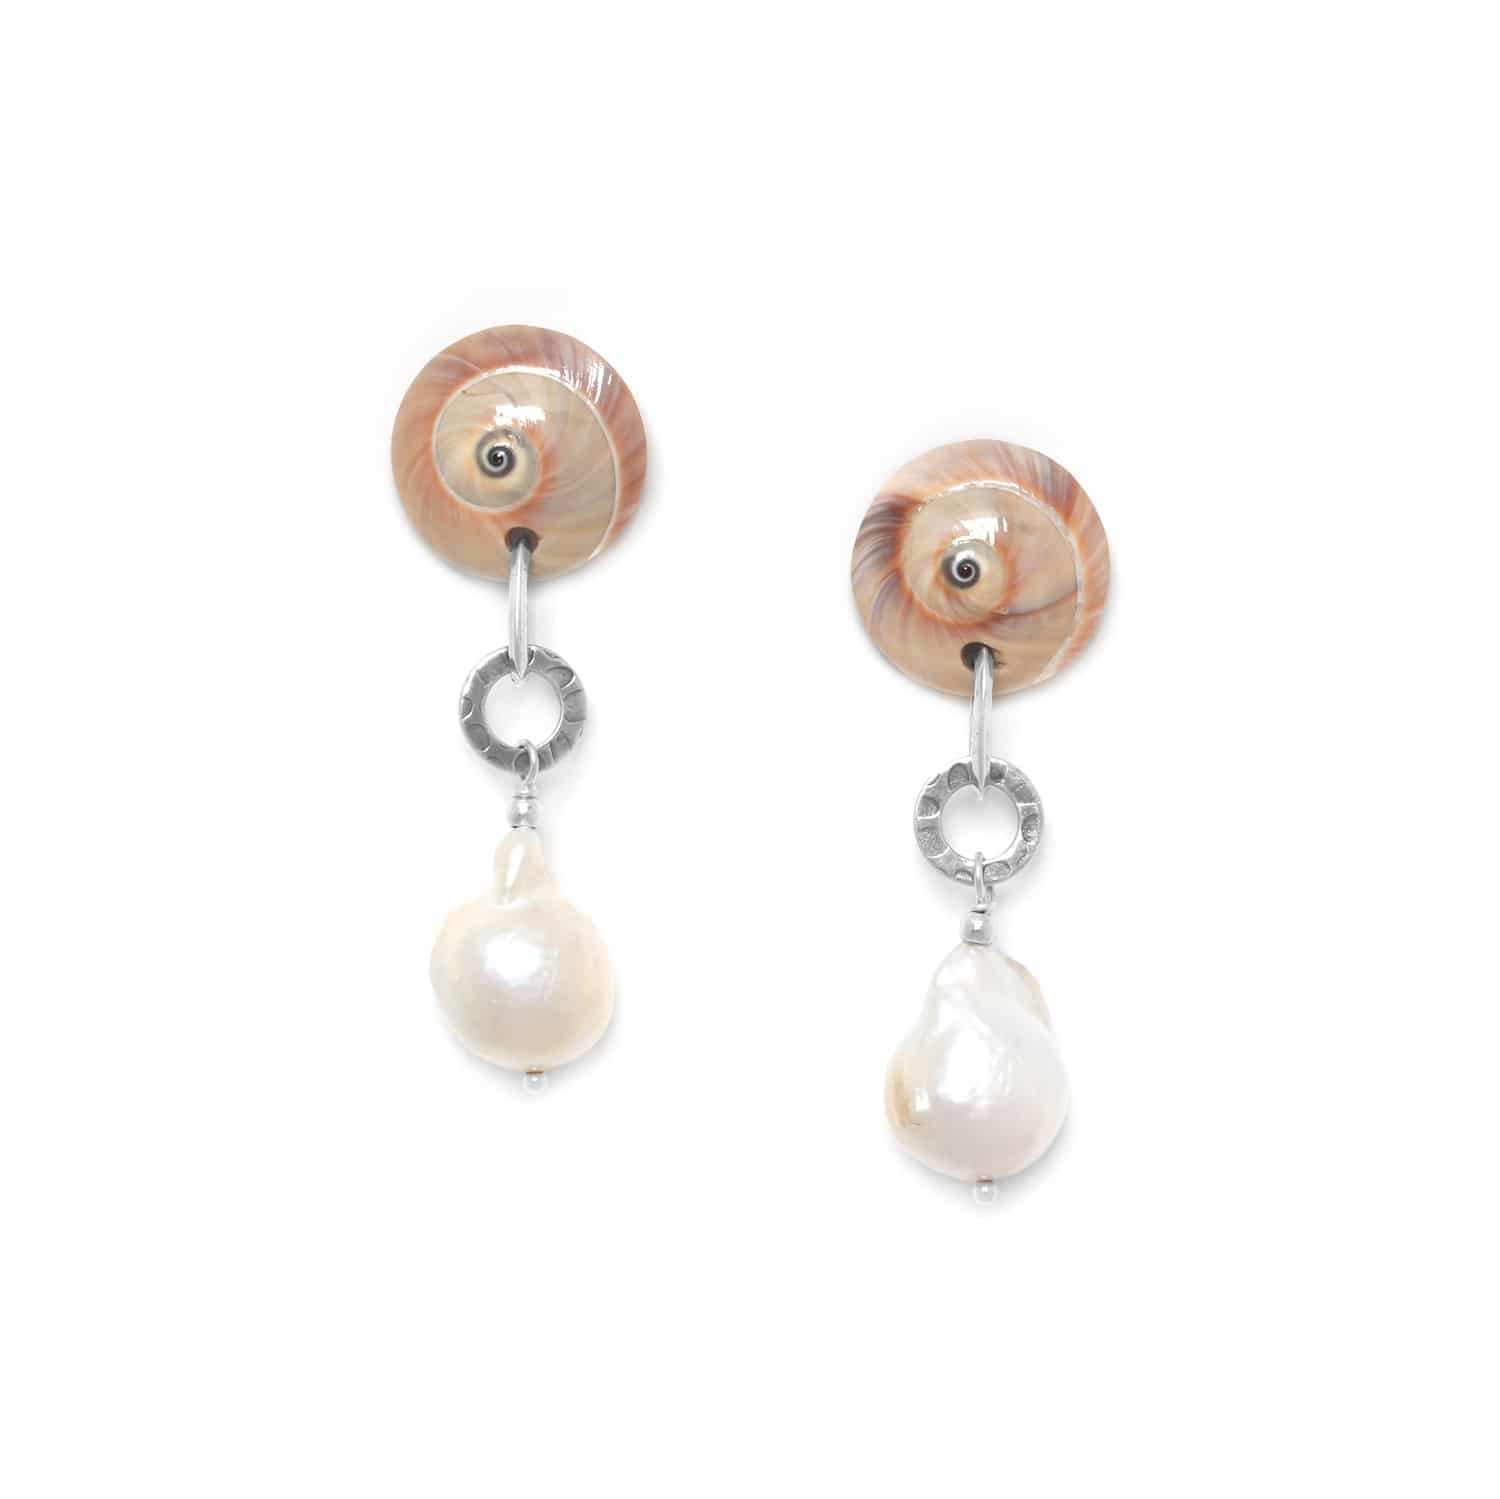 MAKATEA baroque pearl earrings